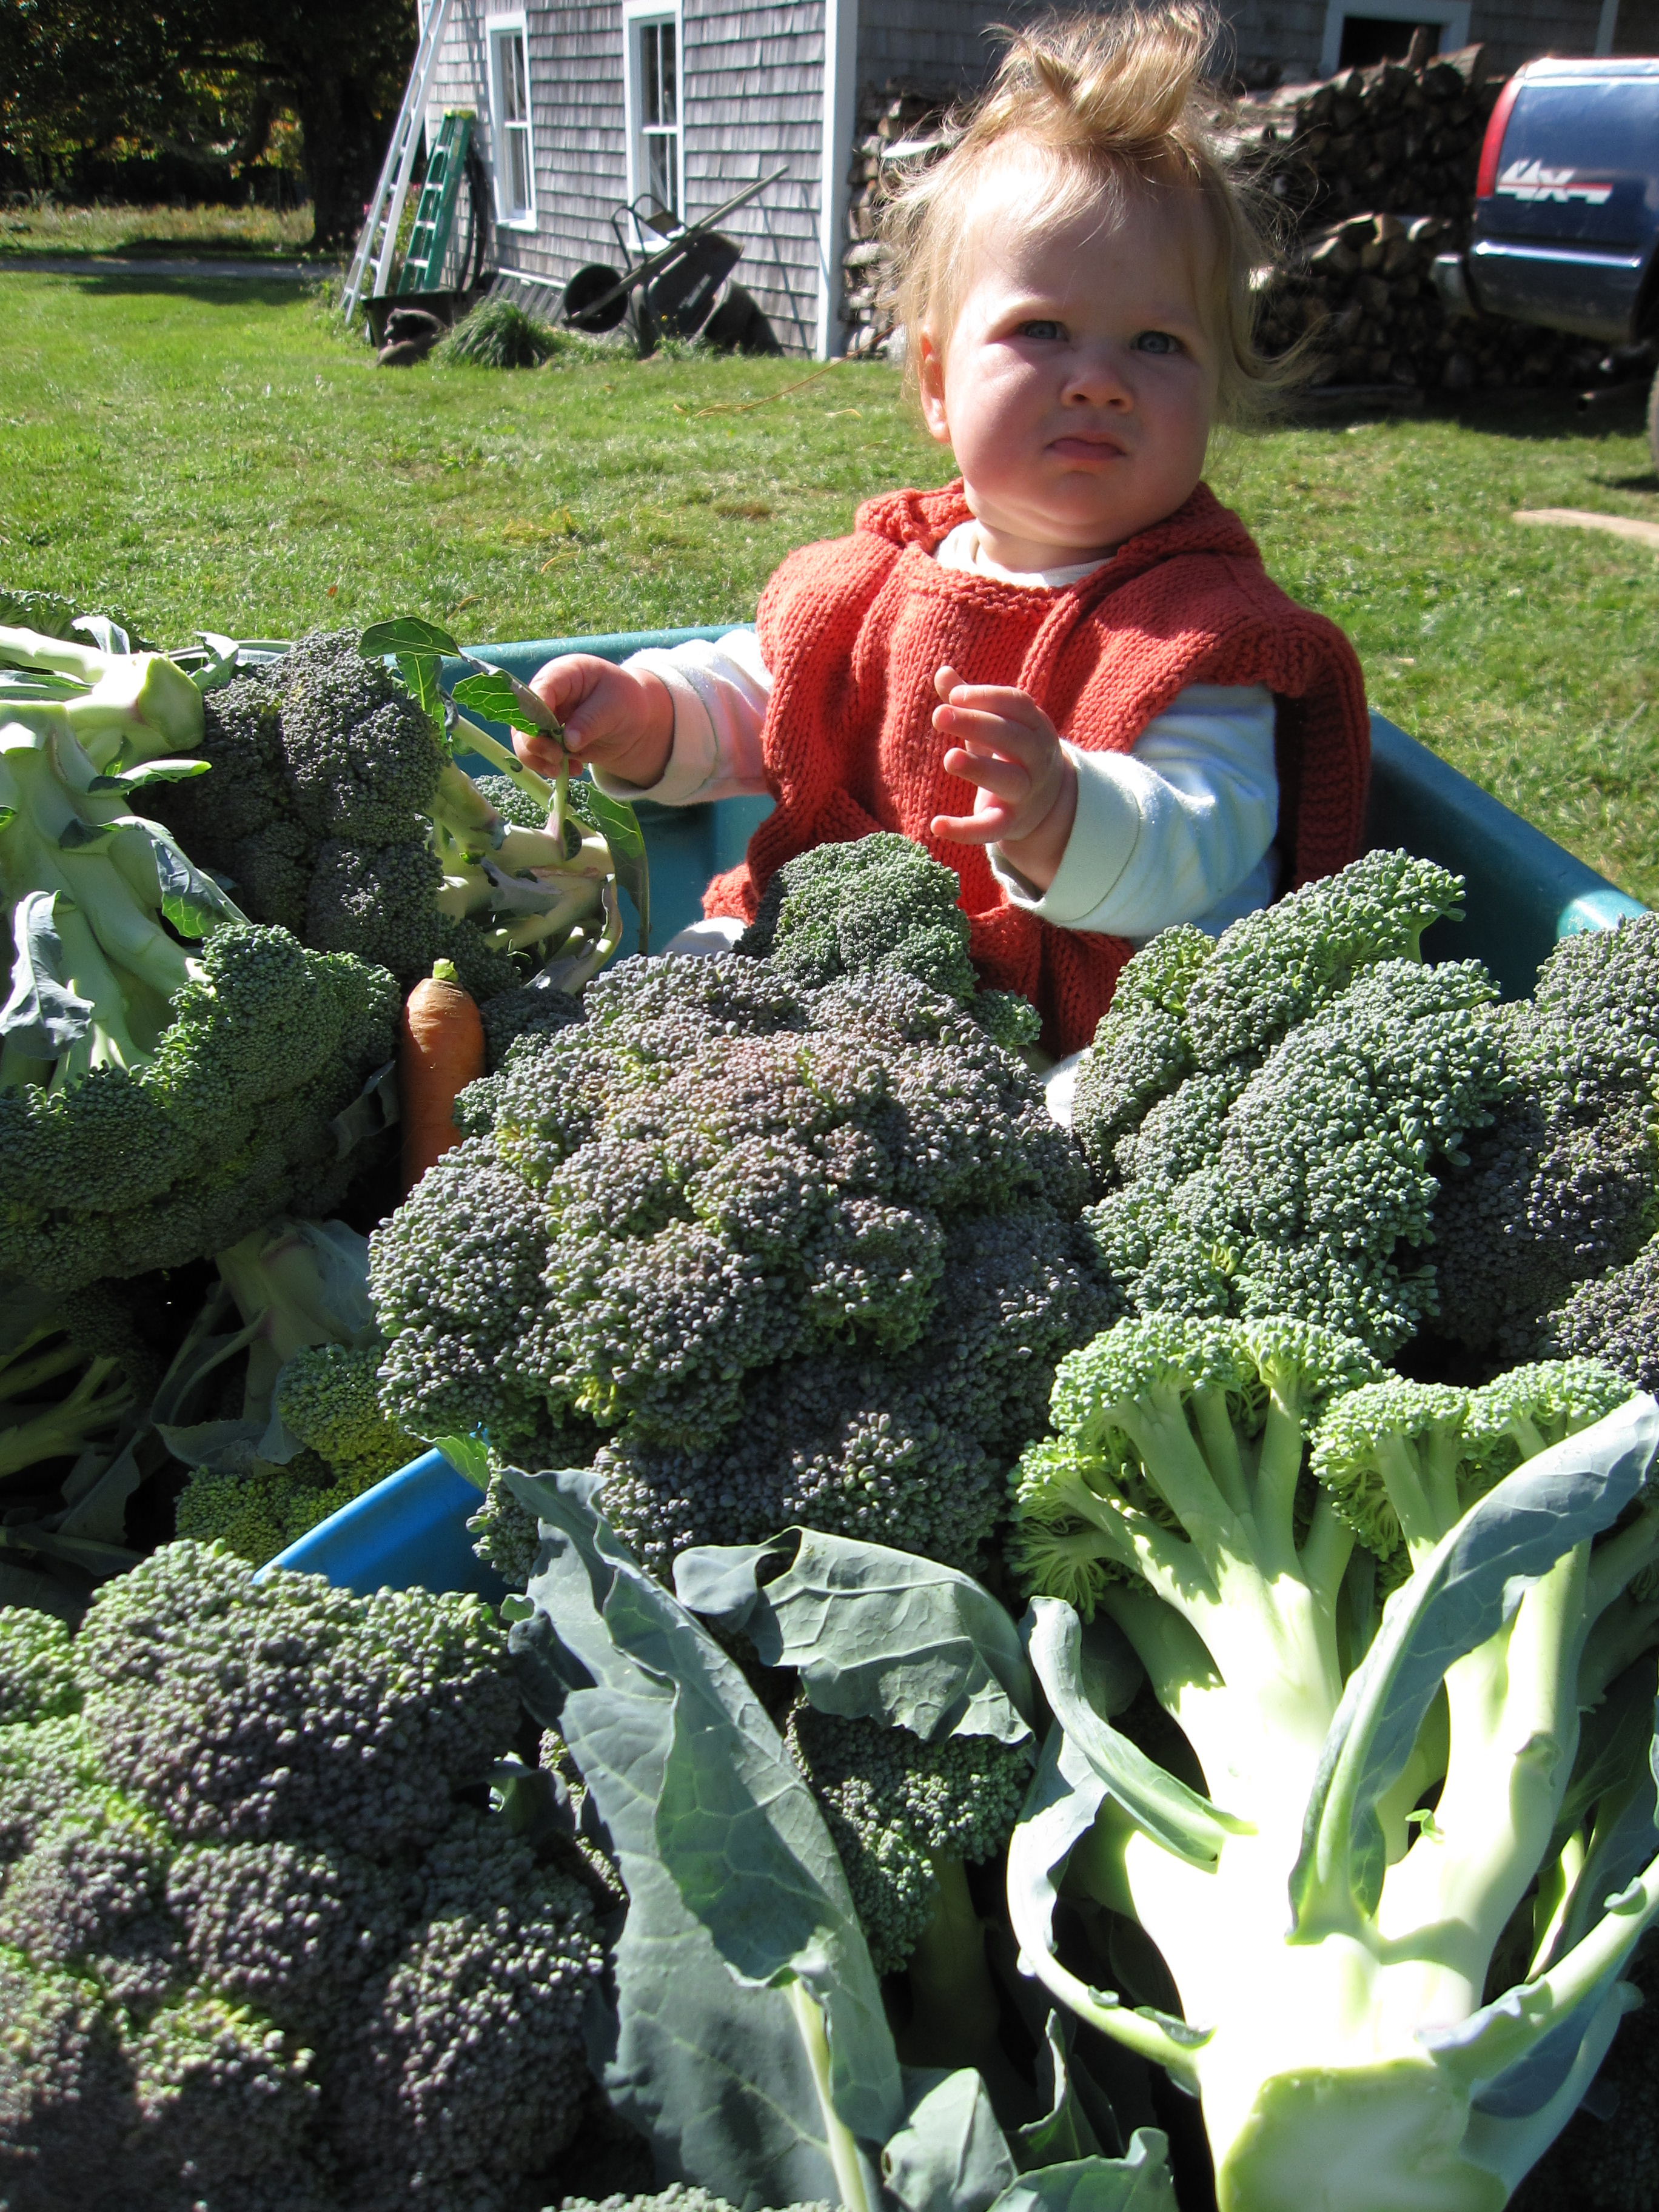 Cecilia in a wagon full of just-harvested broccoli